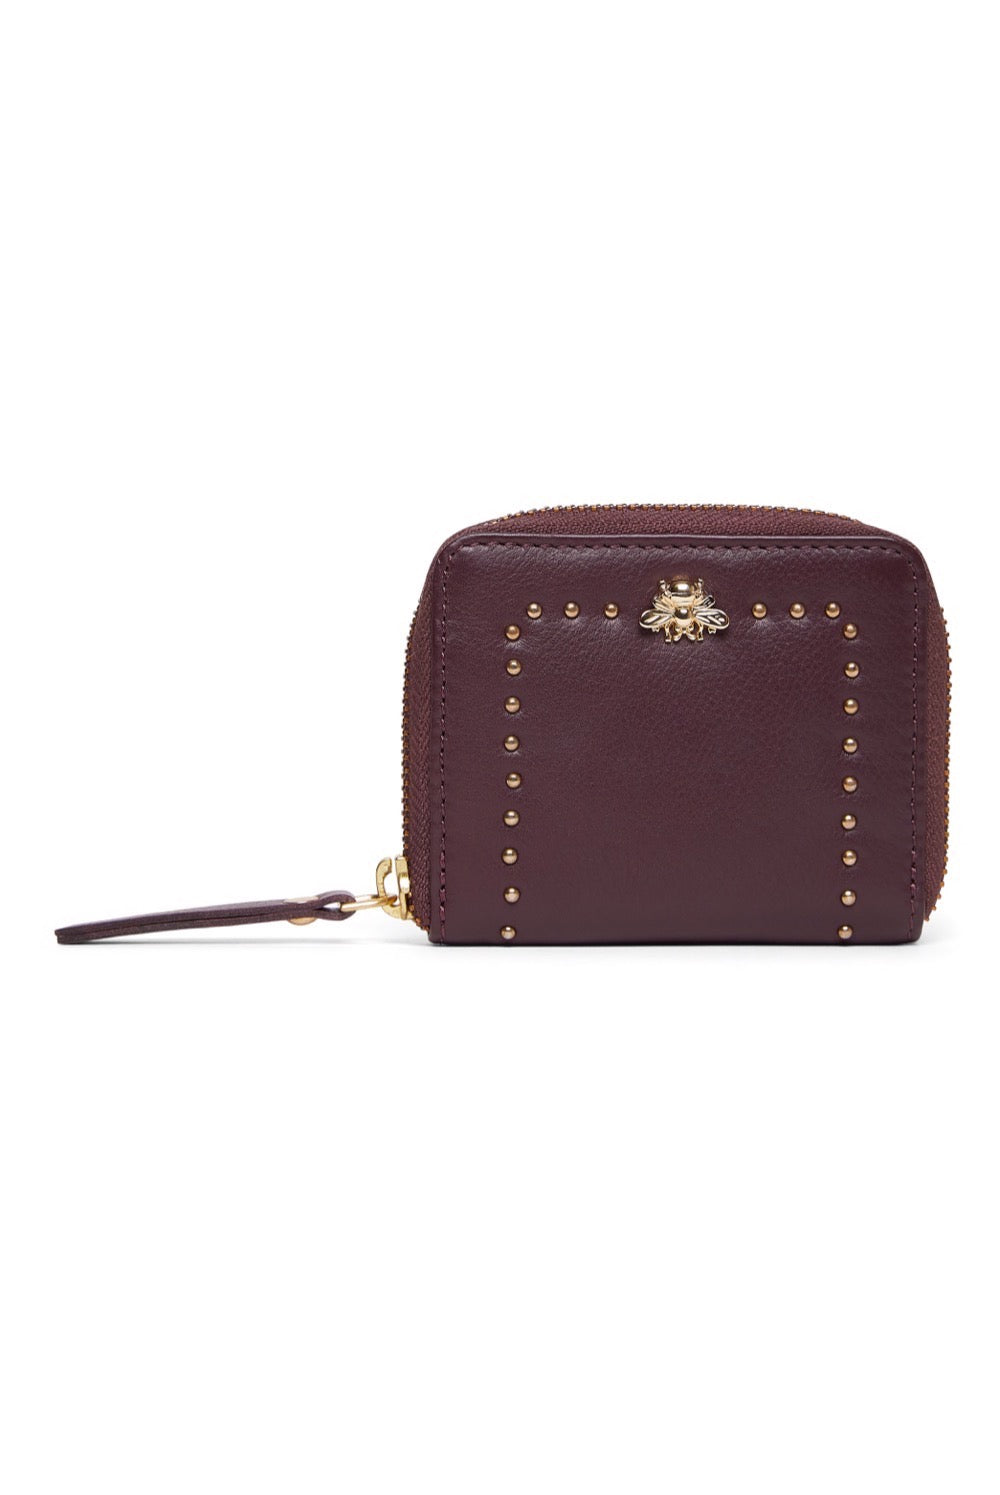 Sophia Coin Purse - Burgundy